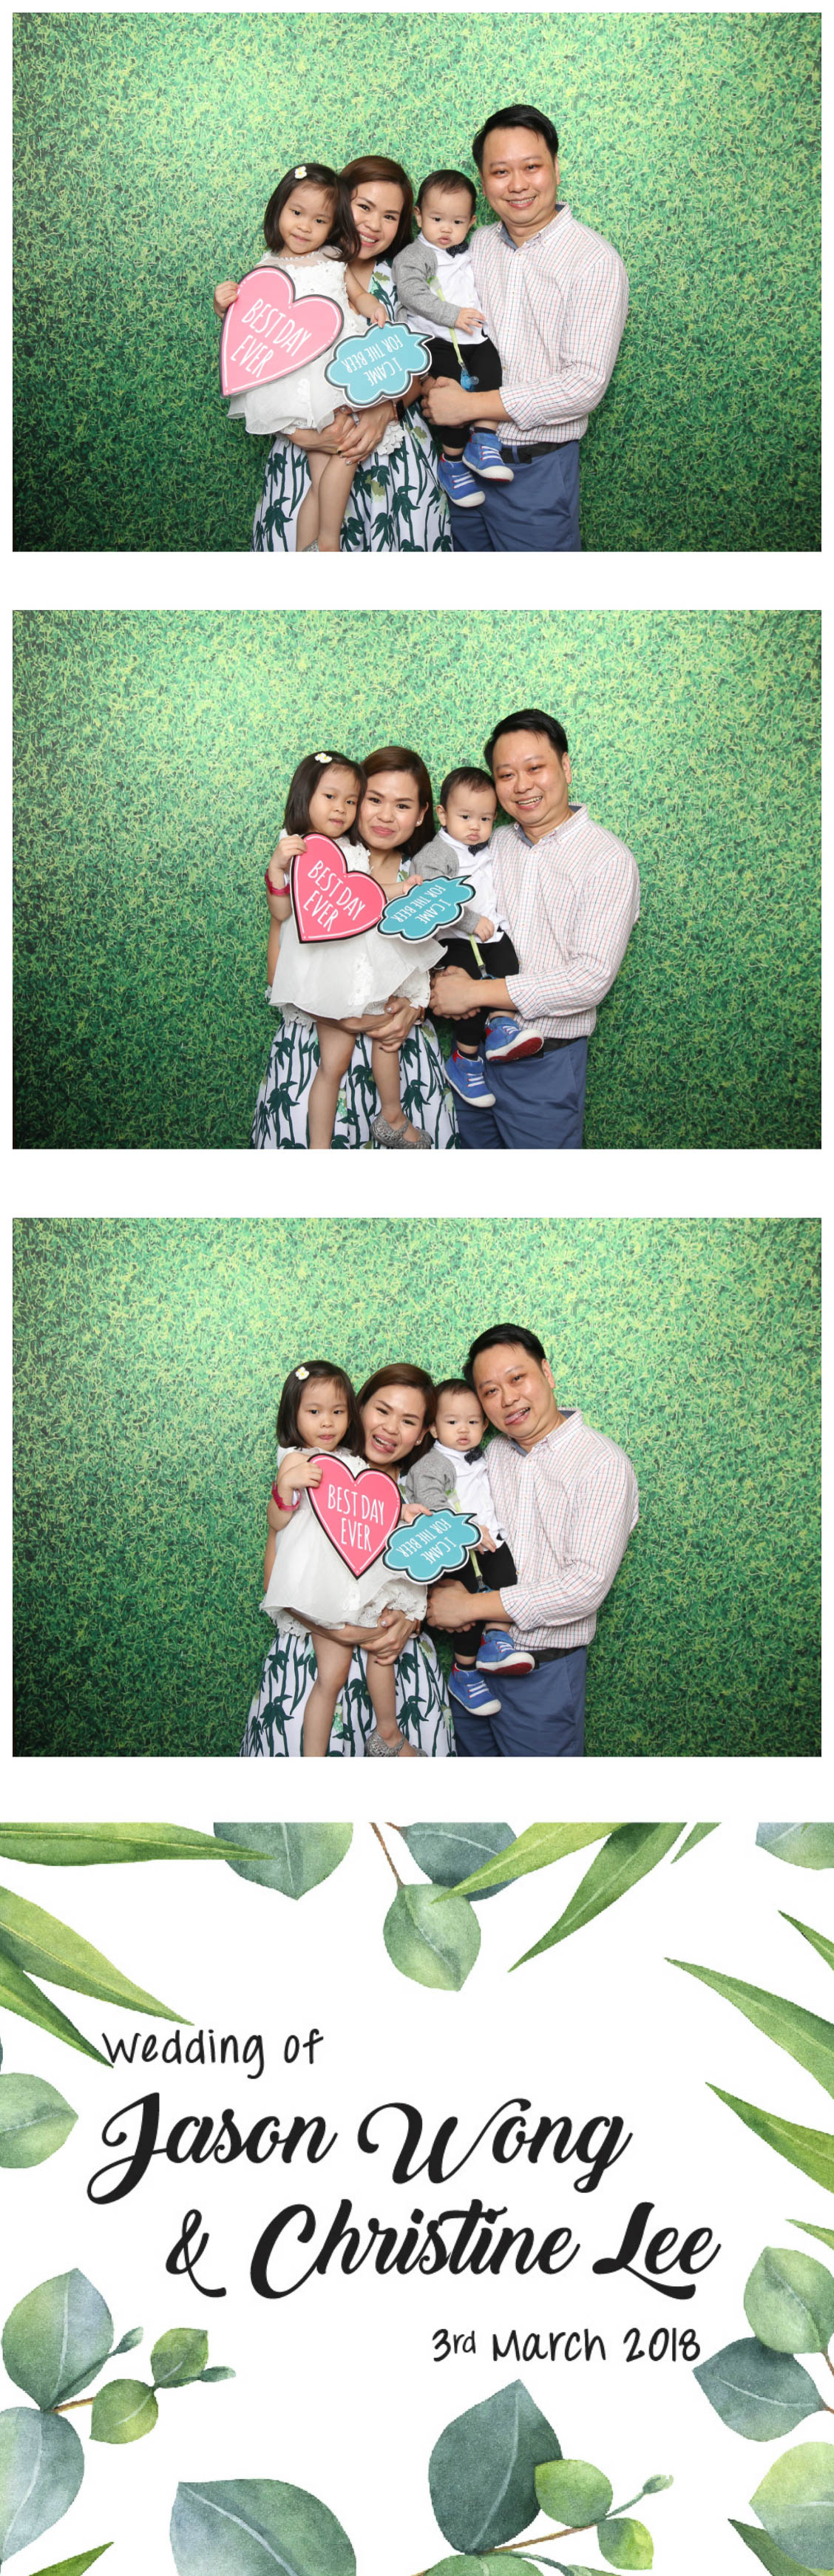 Photobooth 0302-51